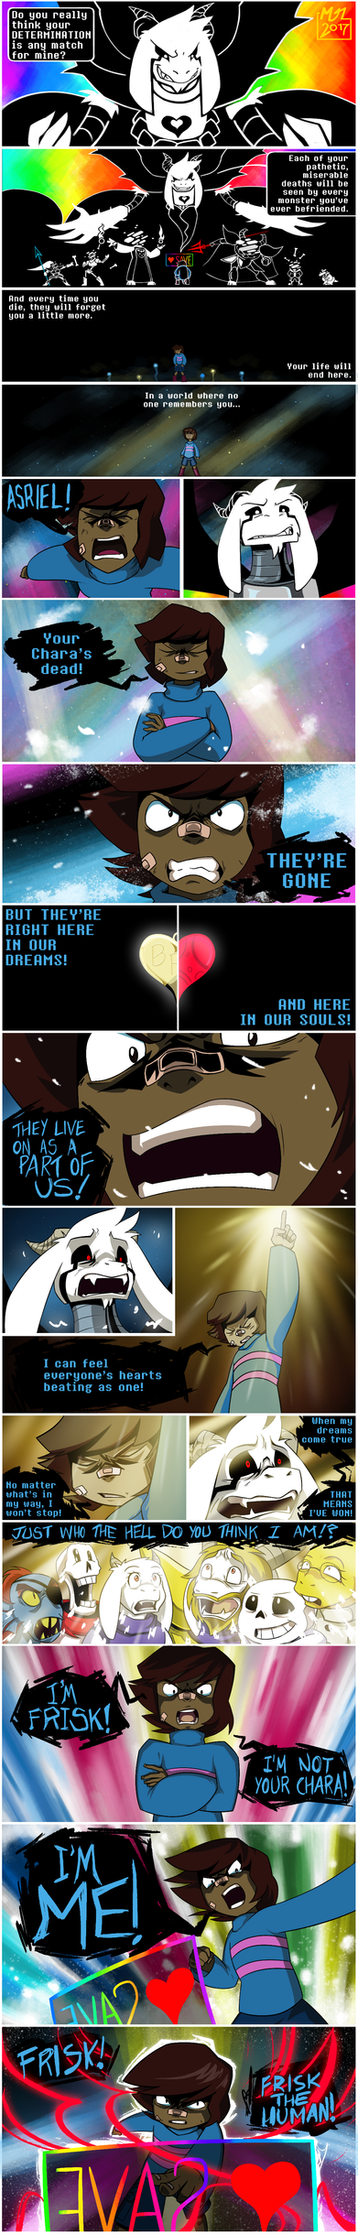 Anime is Real [Part 2/5] by Mattadon